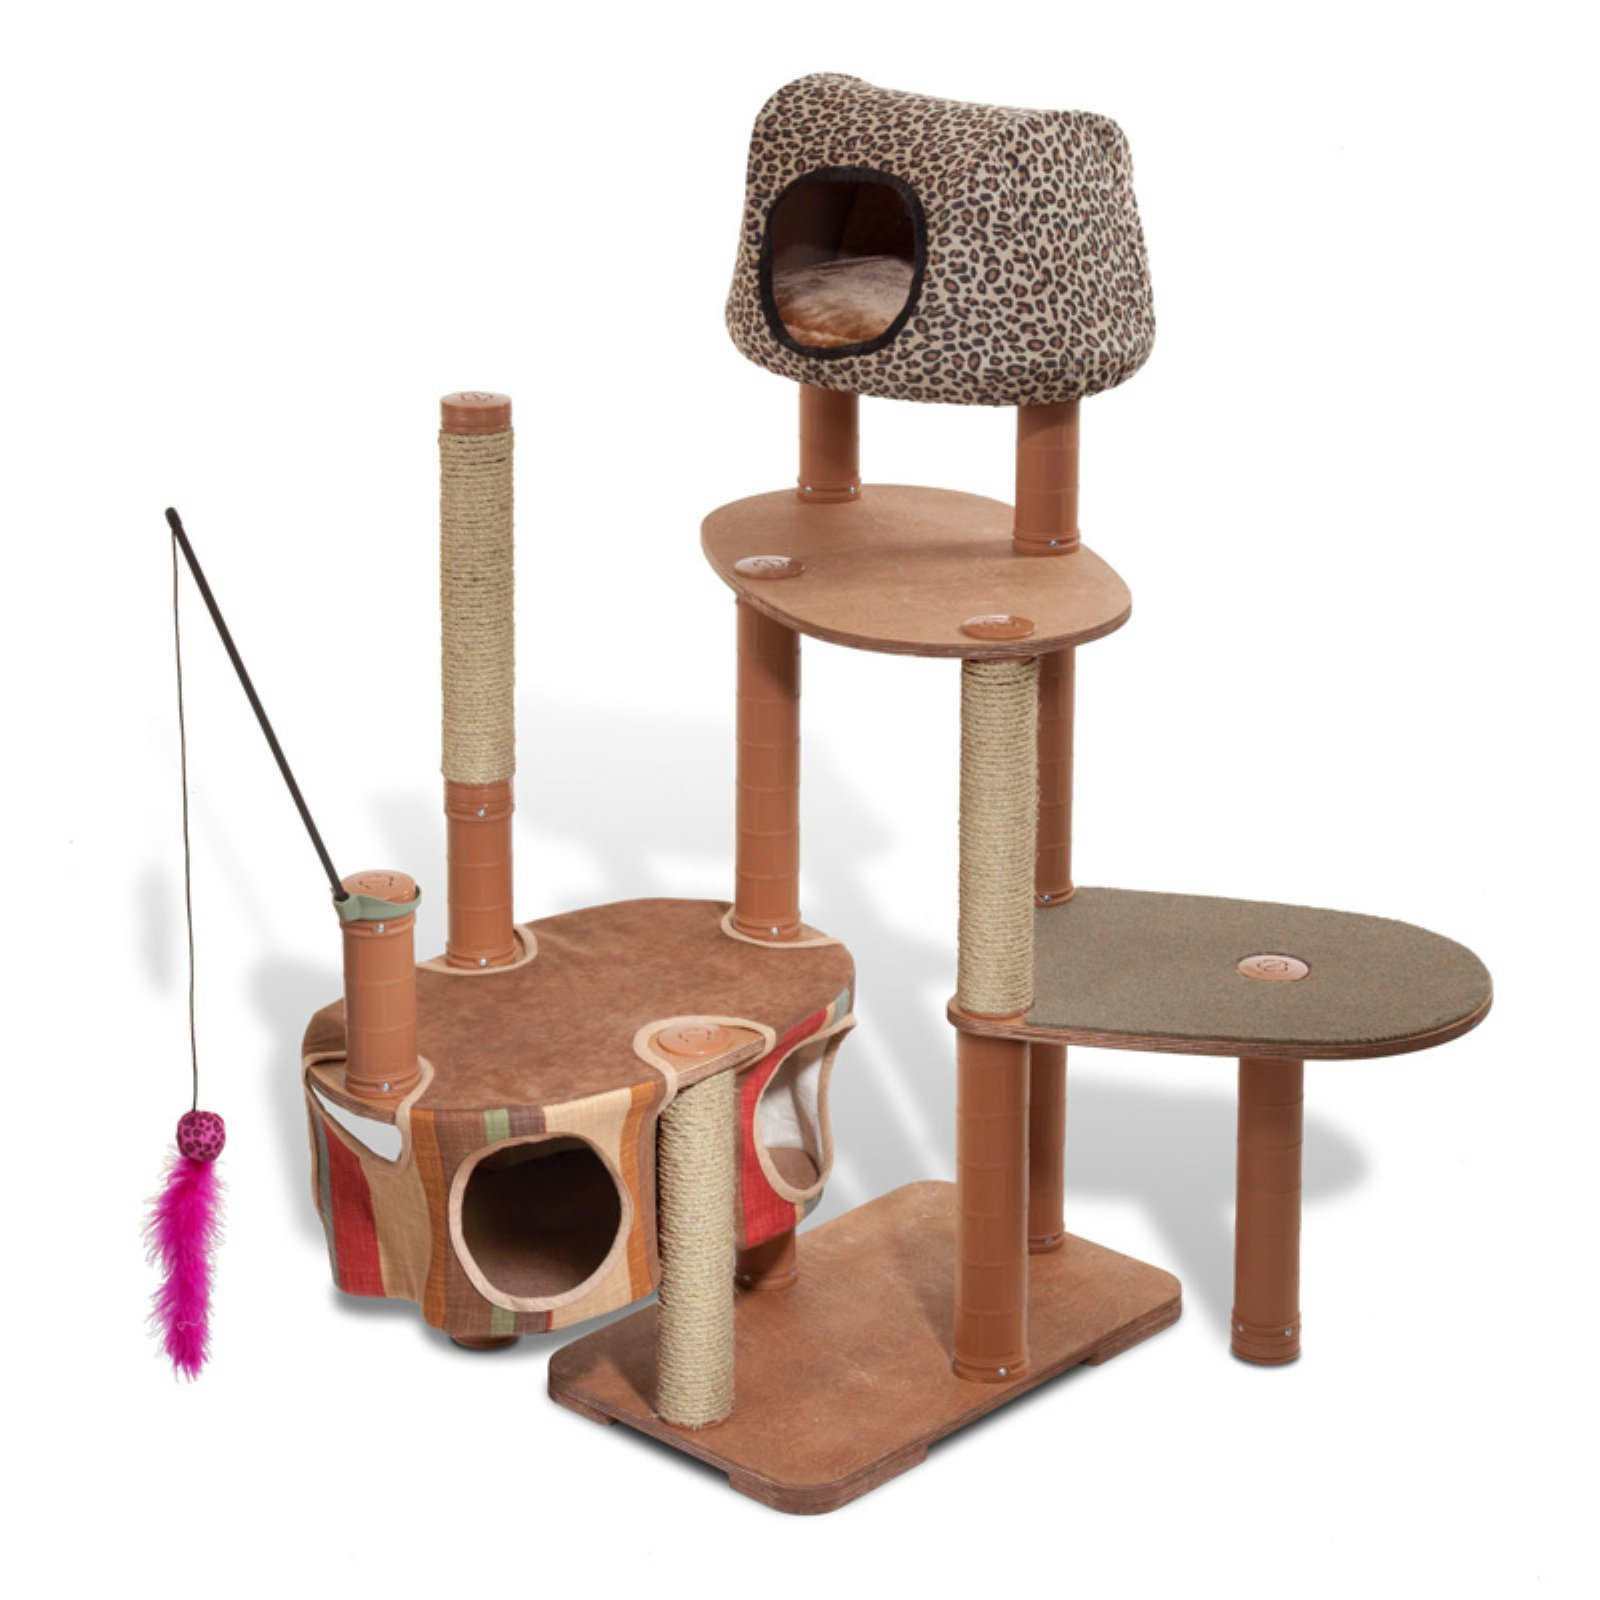 Kittyscape Cat Tree Play Structures Deluxe Playscape Kit